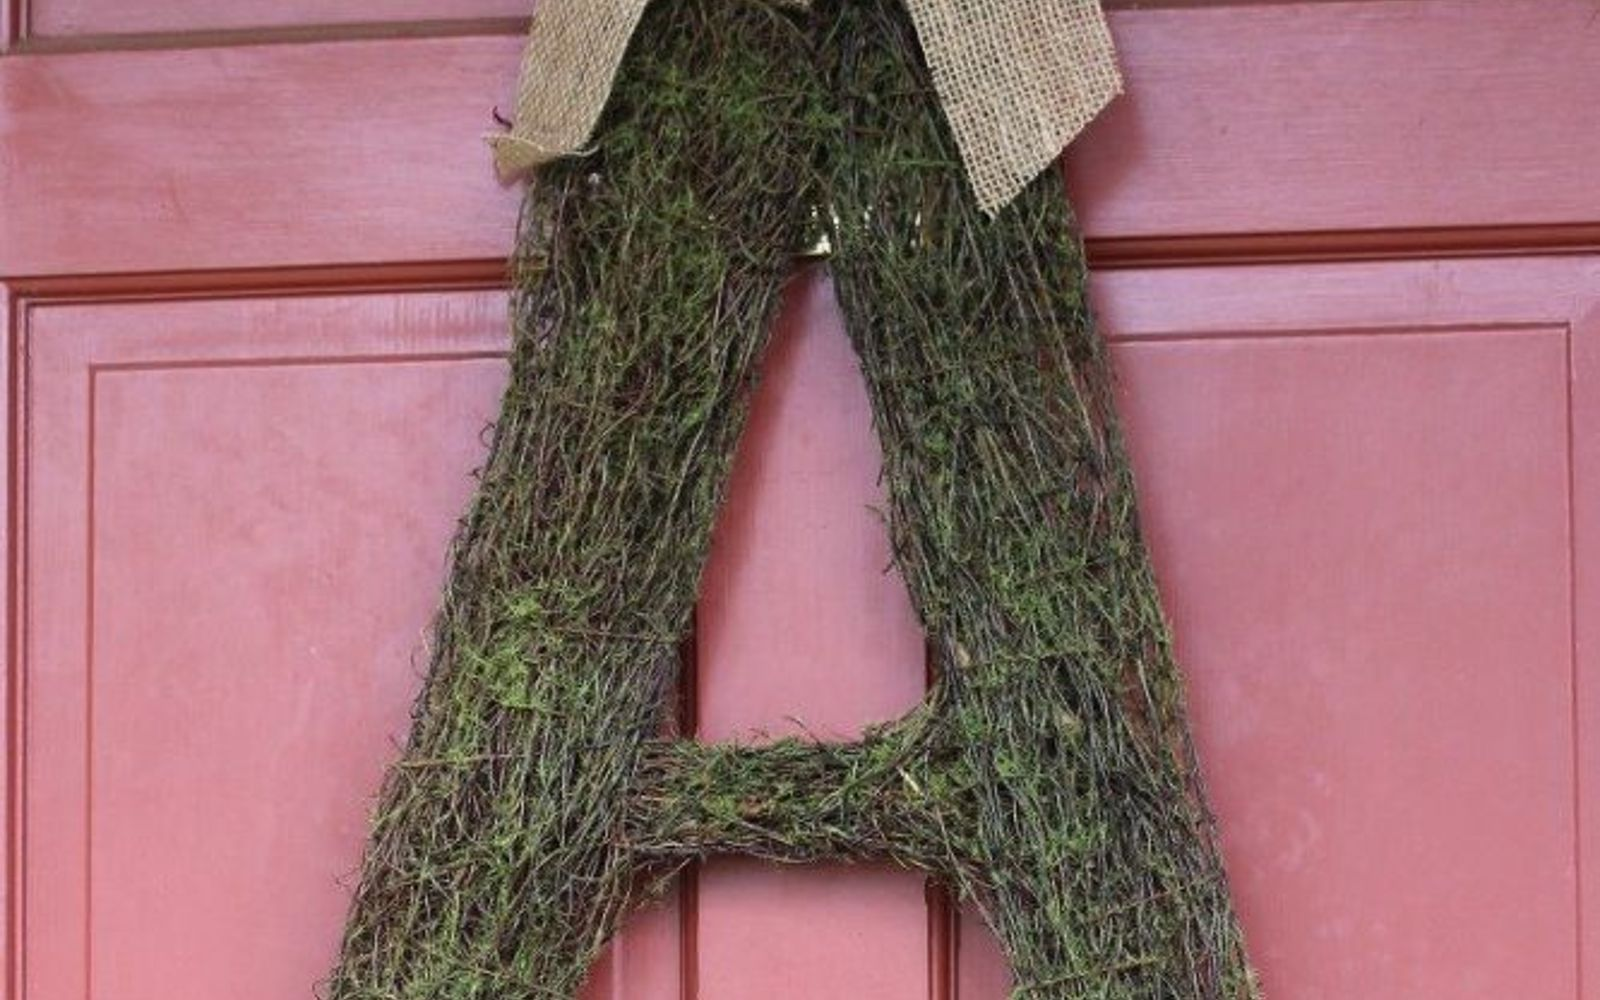 s 31 gorgeous spring wreaths that will make your neighbors smile, crafts, seasonal holiday decor, wreaths, Make a mossy monogram